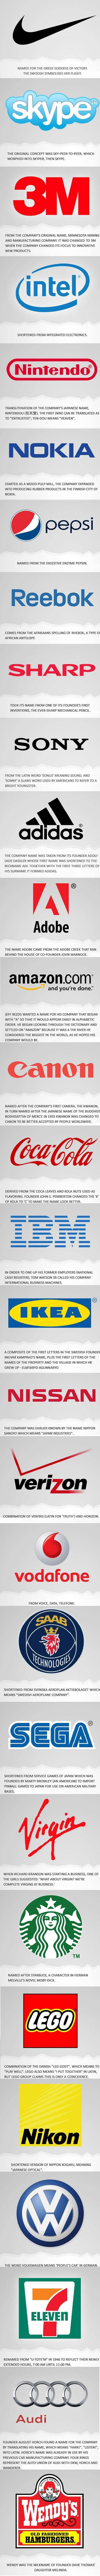 Discover the origins of the brand names and logos.